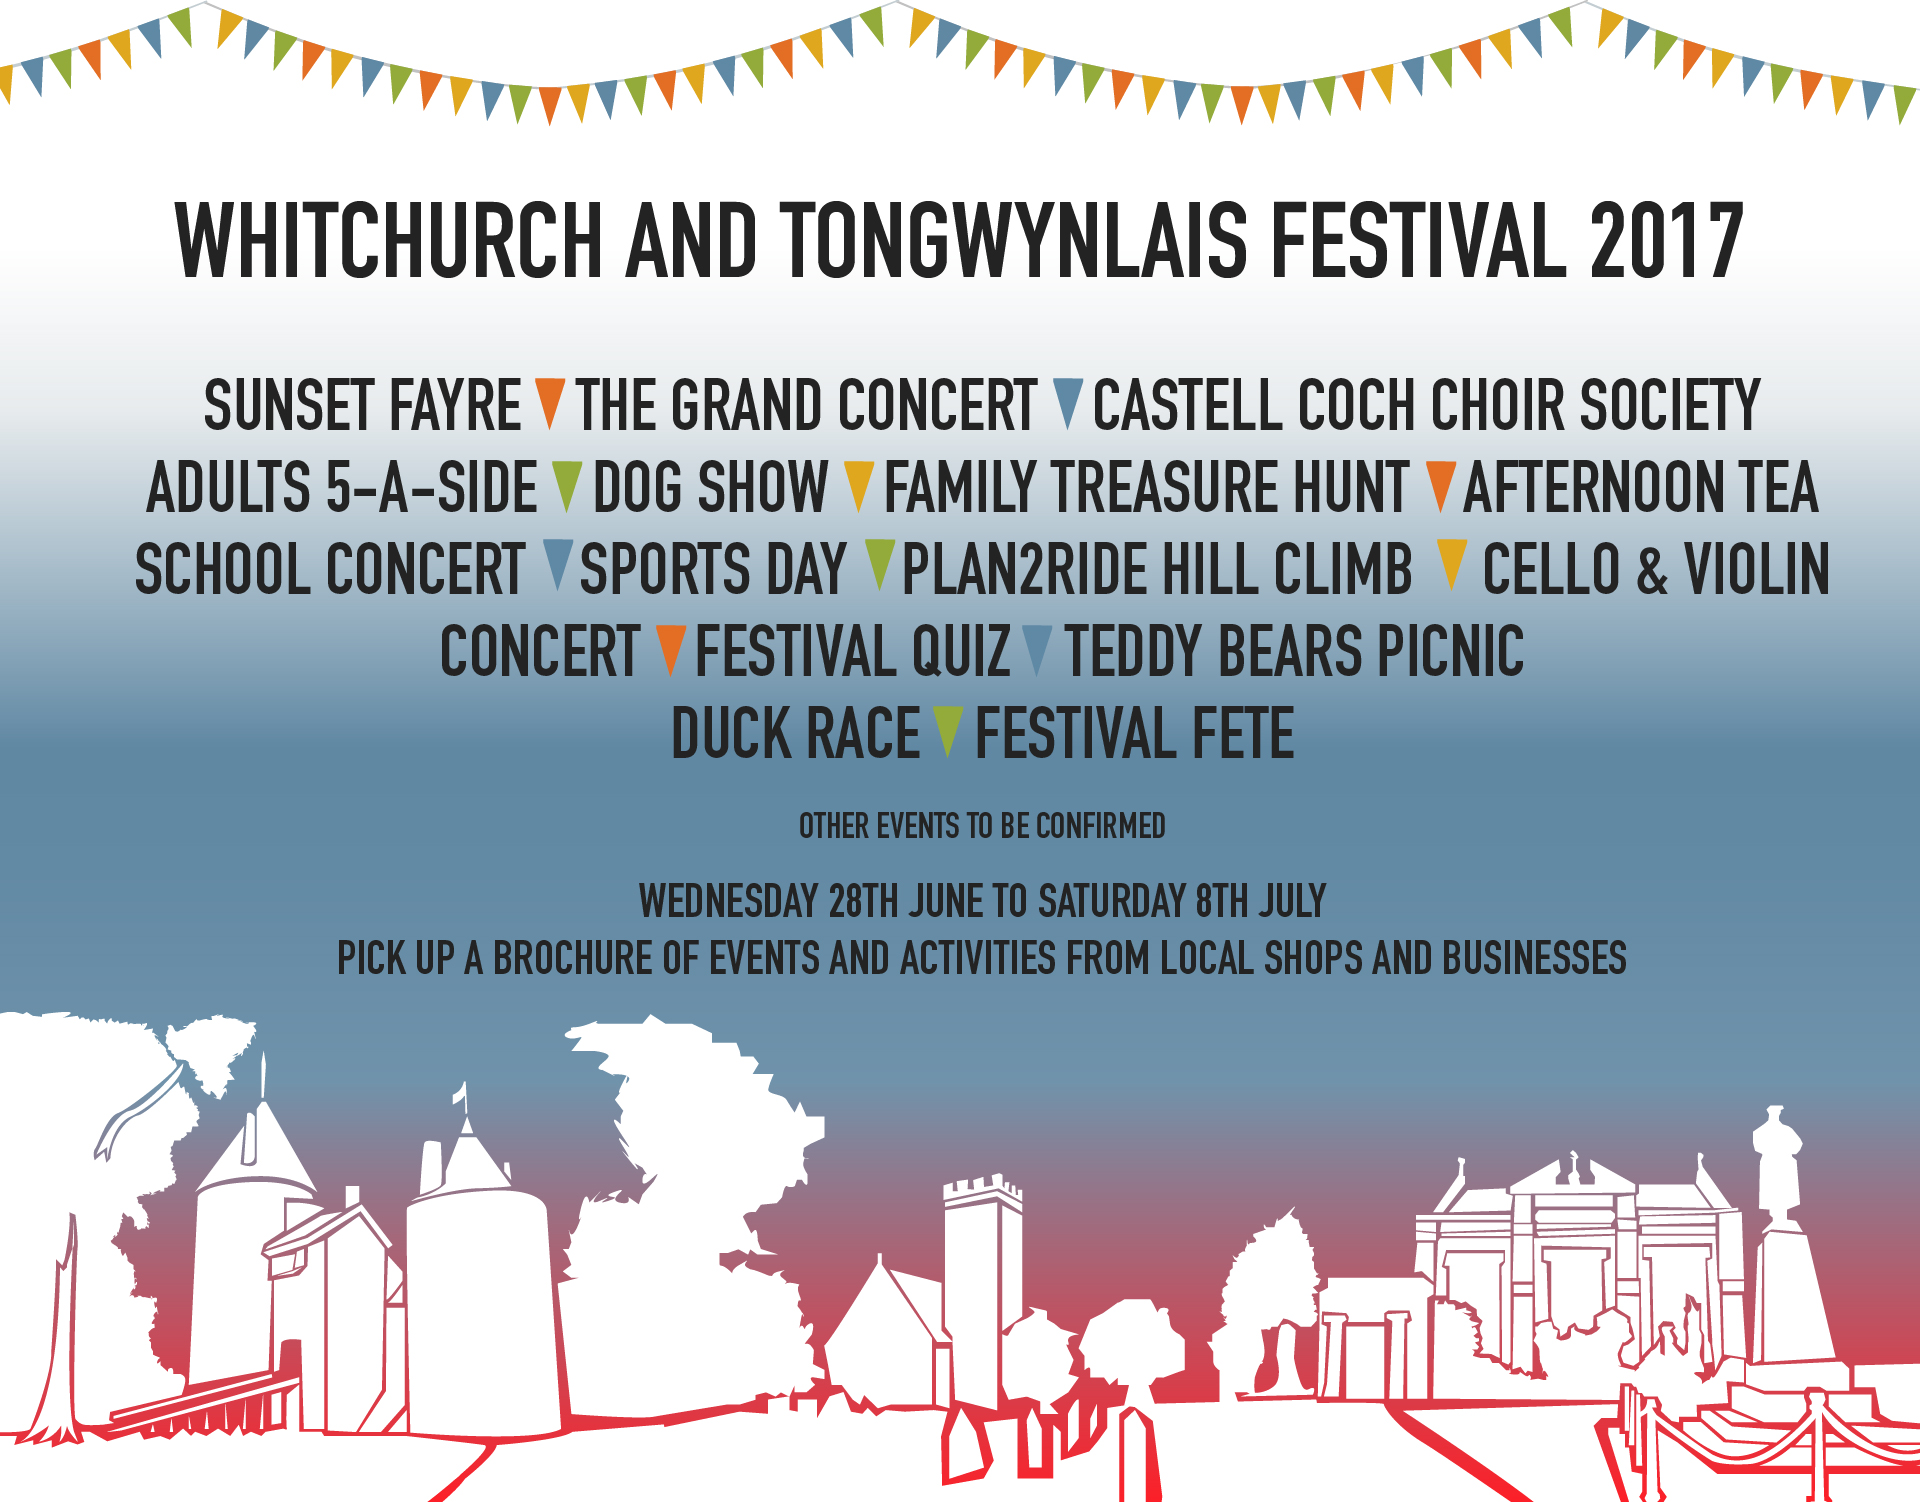 Whitchurch Tongwynlias Festival